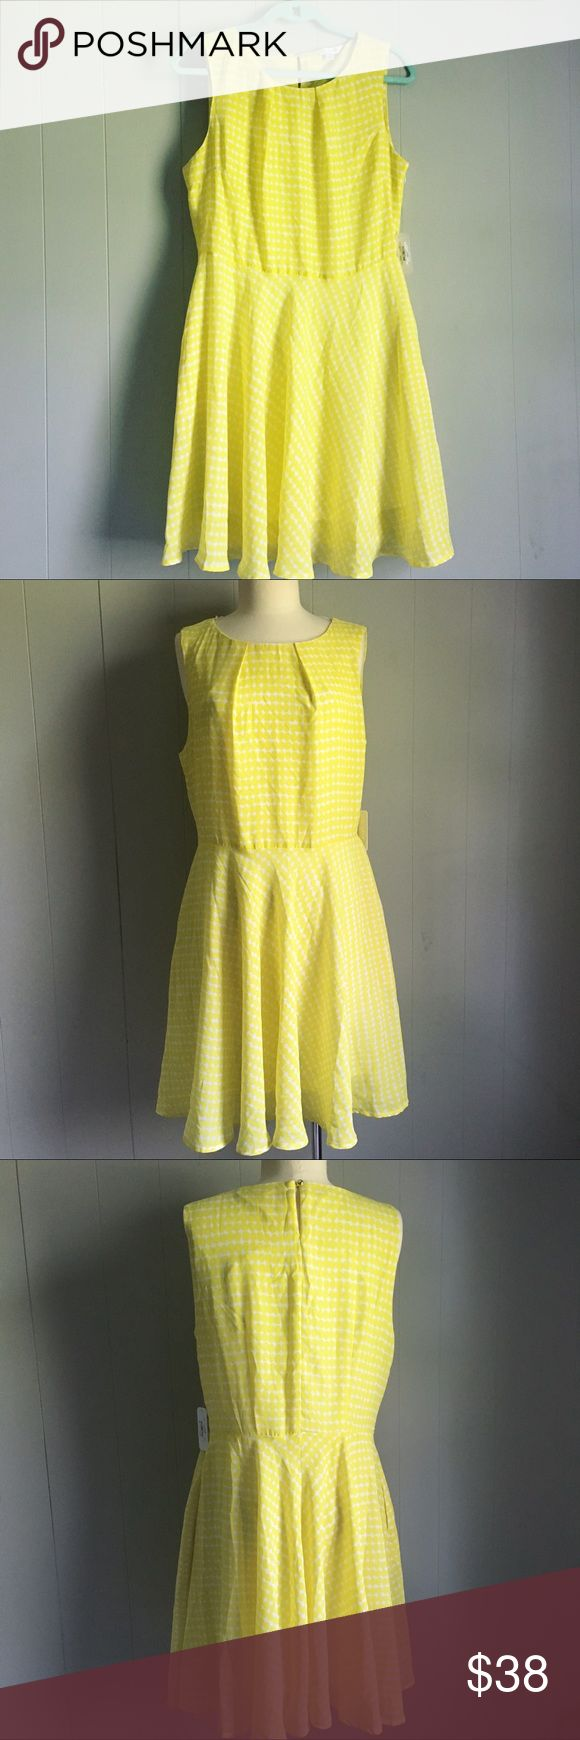 Charming Charlie • Yellow Tea Cocktail Party Dress Charming Charlie Yellow Dress Tea Cocktail Party Size L Diamond Check Print Woman's Aline Sleeveless Dress check print Description  Brand/Designer: Charming Charlie  Condition: New with tag Color: yellow/white Size: L Fully lined  Most important: Pockets! Charming Charlie Dresses Mini